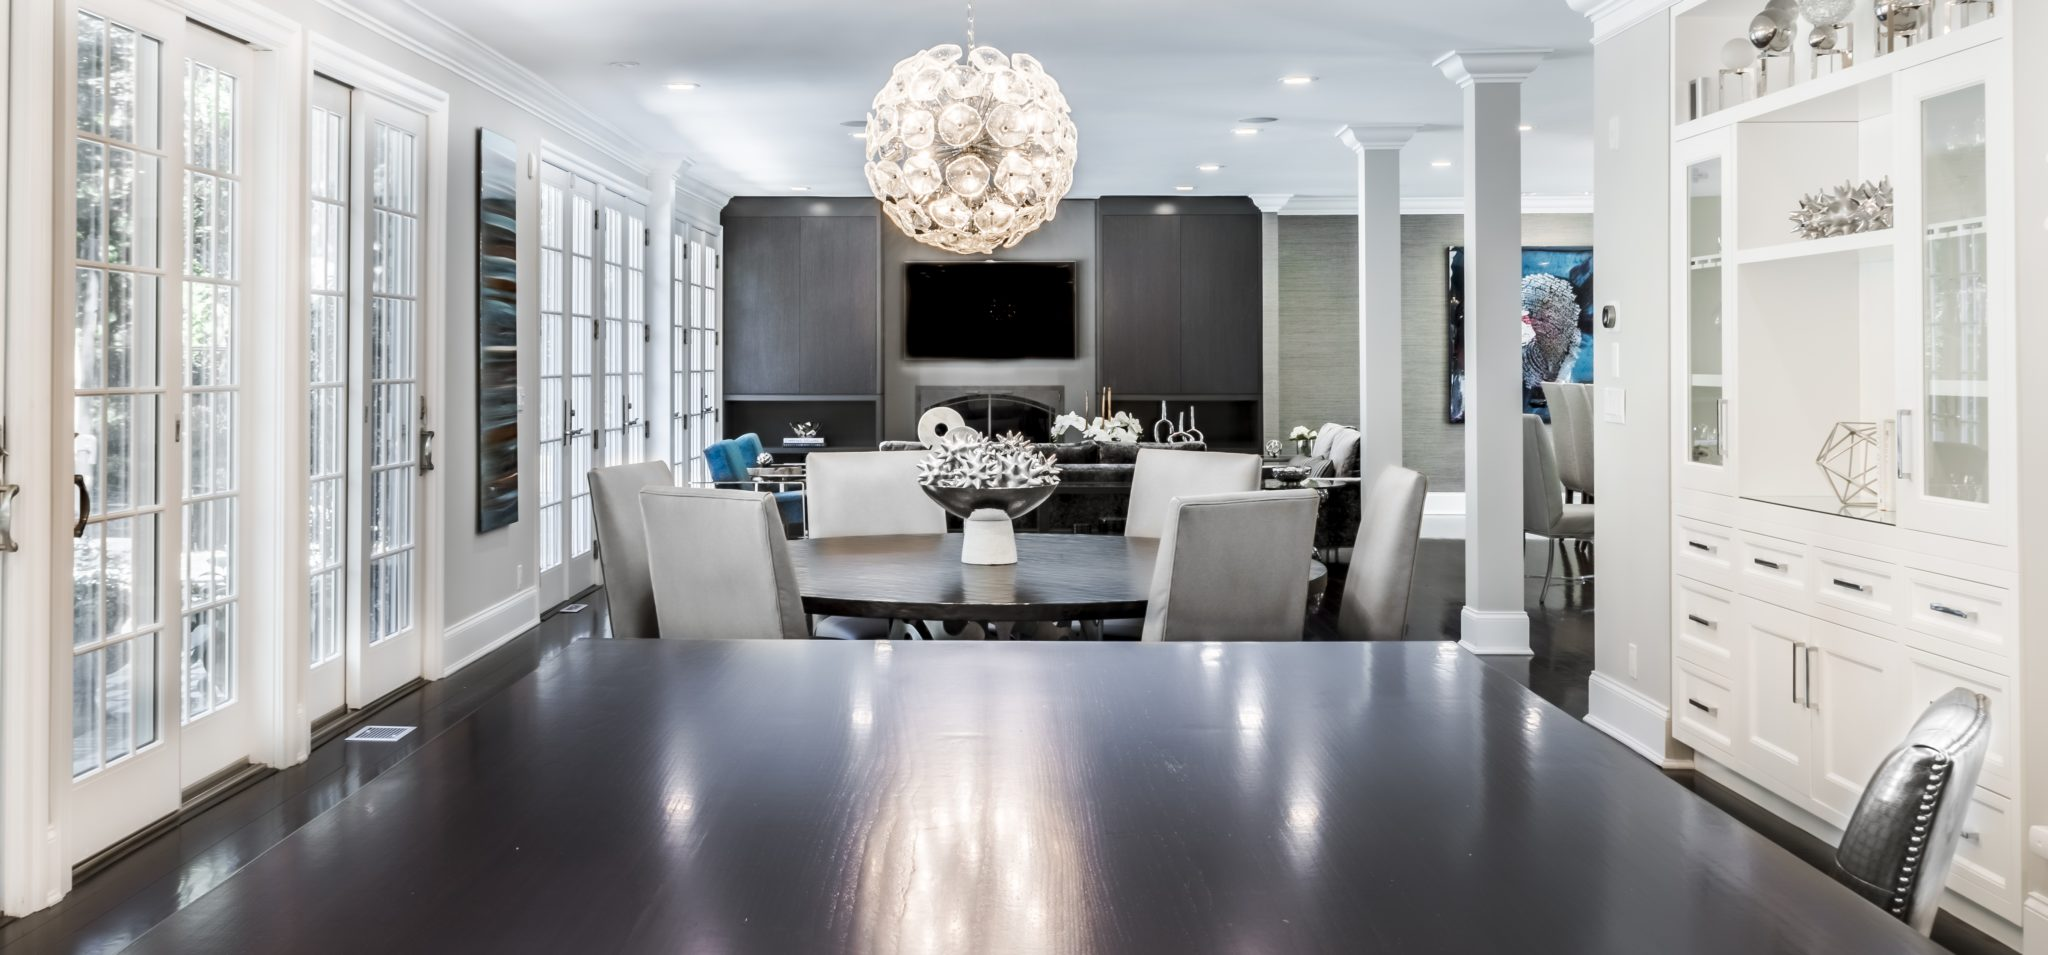 Open concept kitchen into living room with wall of sliders by Kim Radovich Interiors